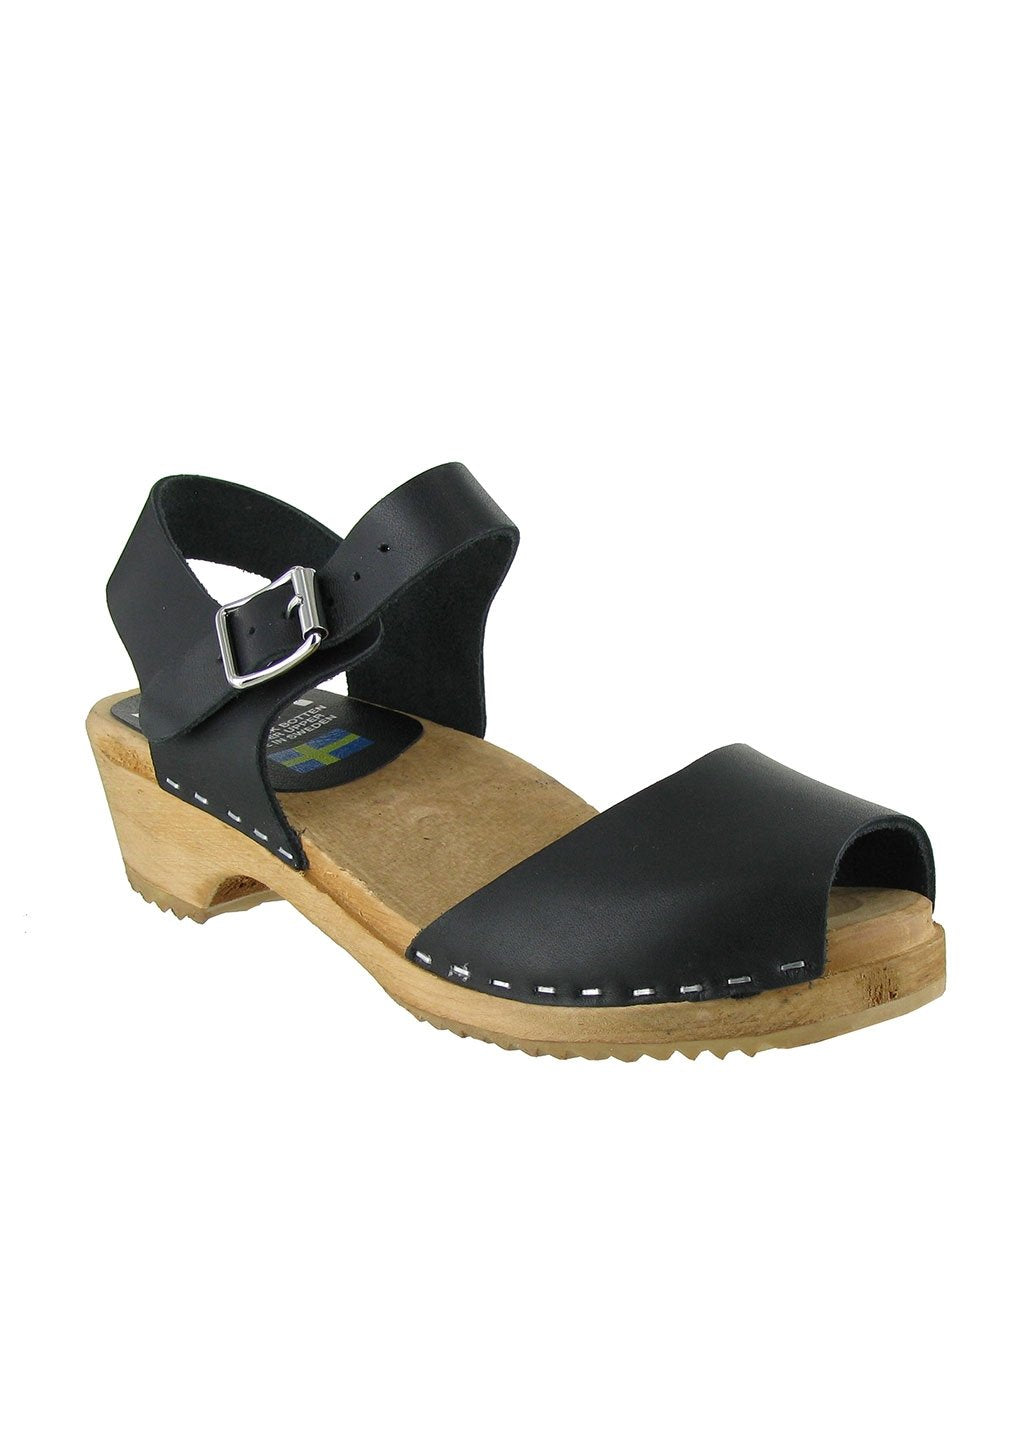 Mia Women's Anja Clog Black Leather